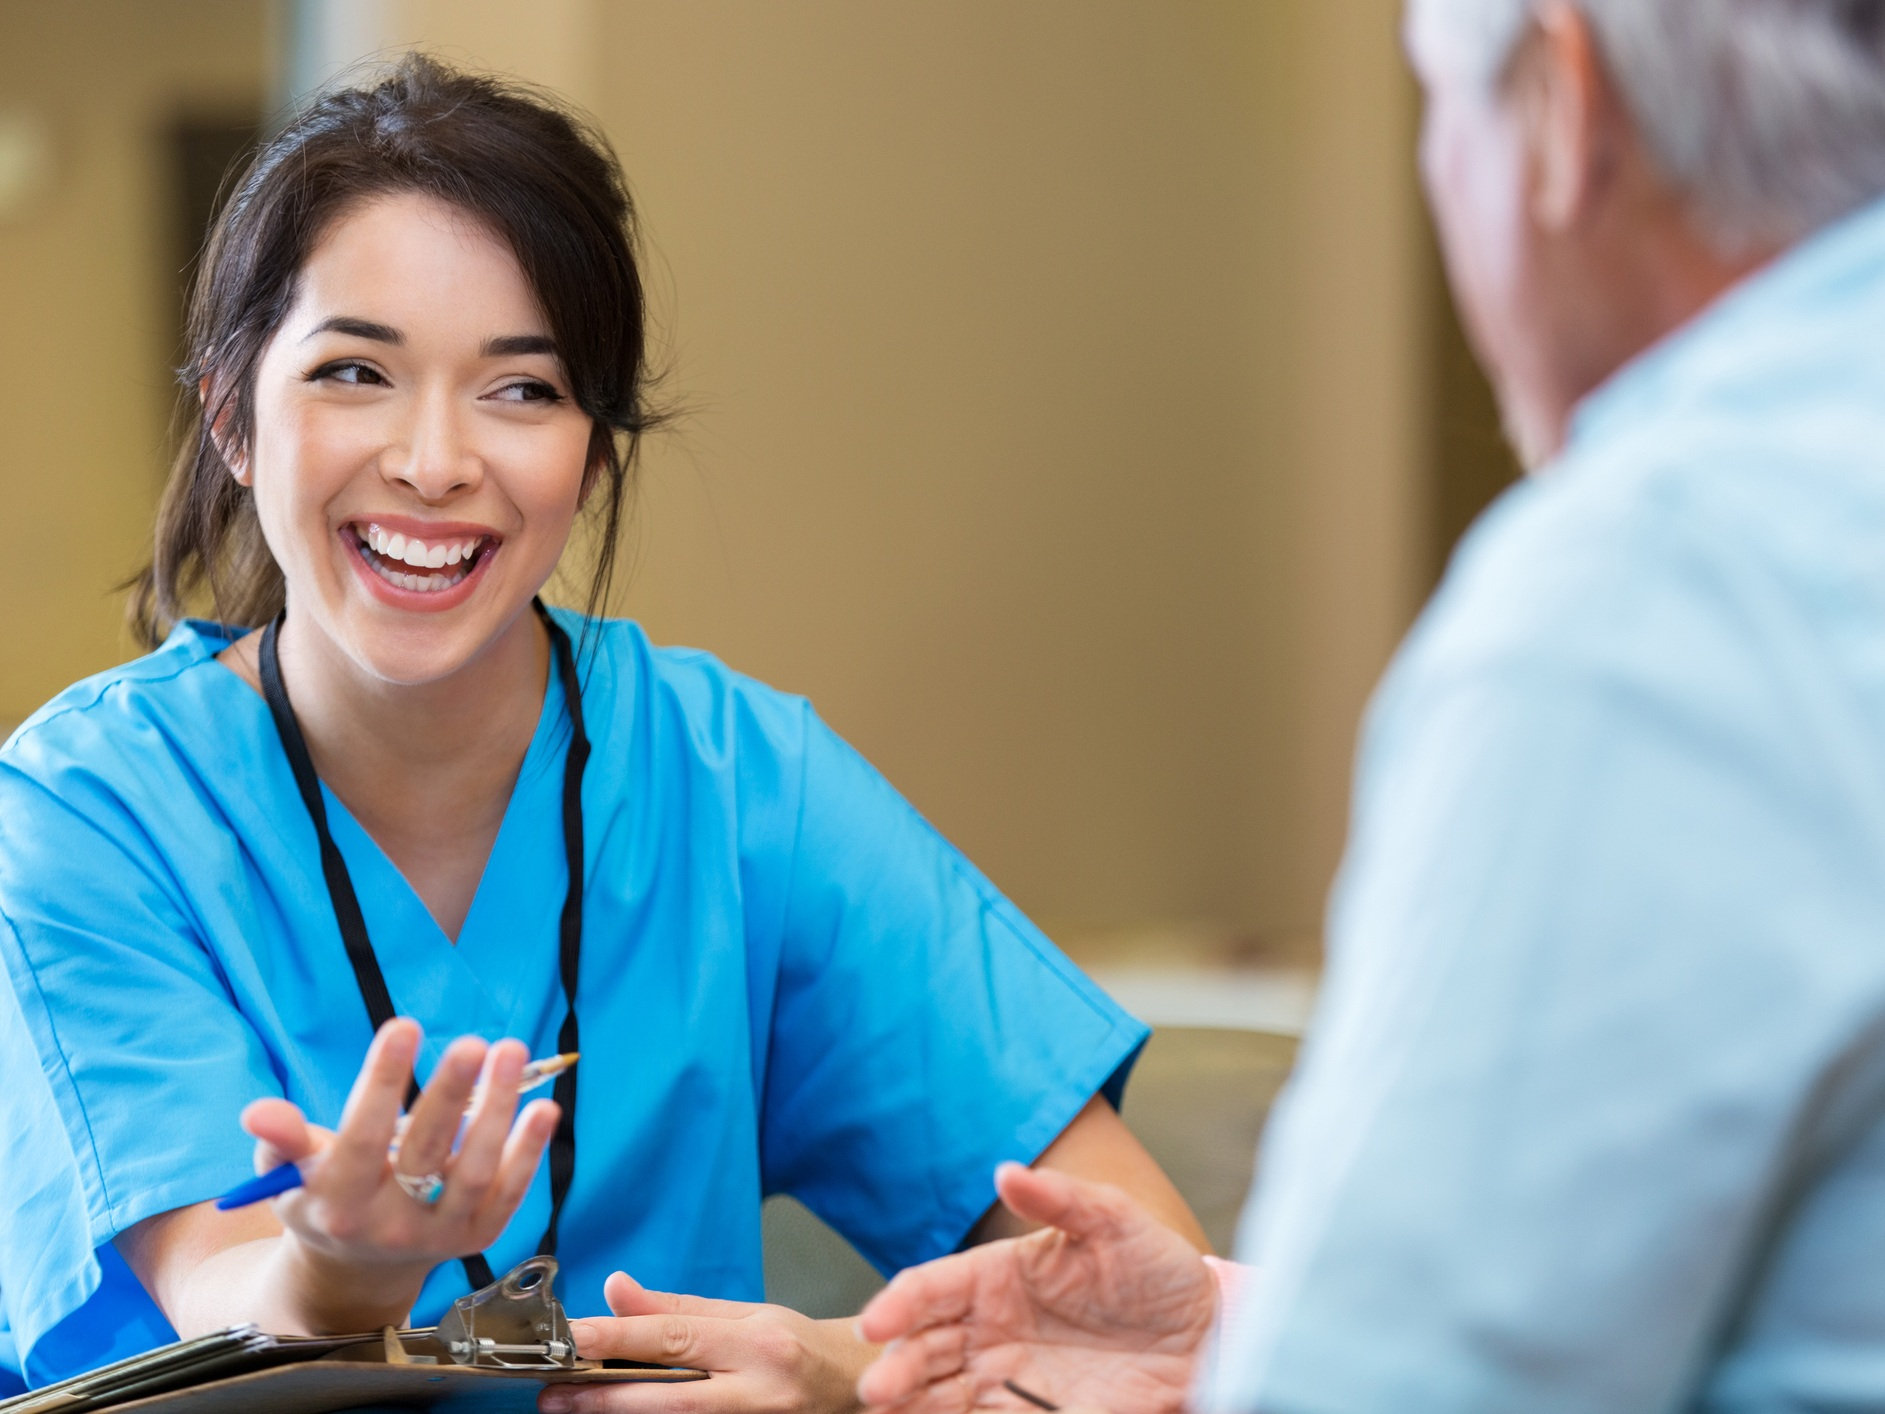 Raising the Bar - Post-acute care doesn't have to be fragmented and costly. If you want to join us in our mission to deliver the highest possible quality care in skilled nursing facilities, then we want to hear from you. Let's raise the bar together.